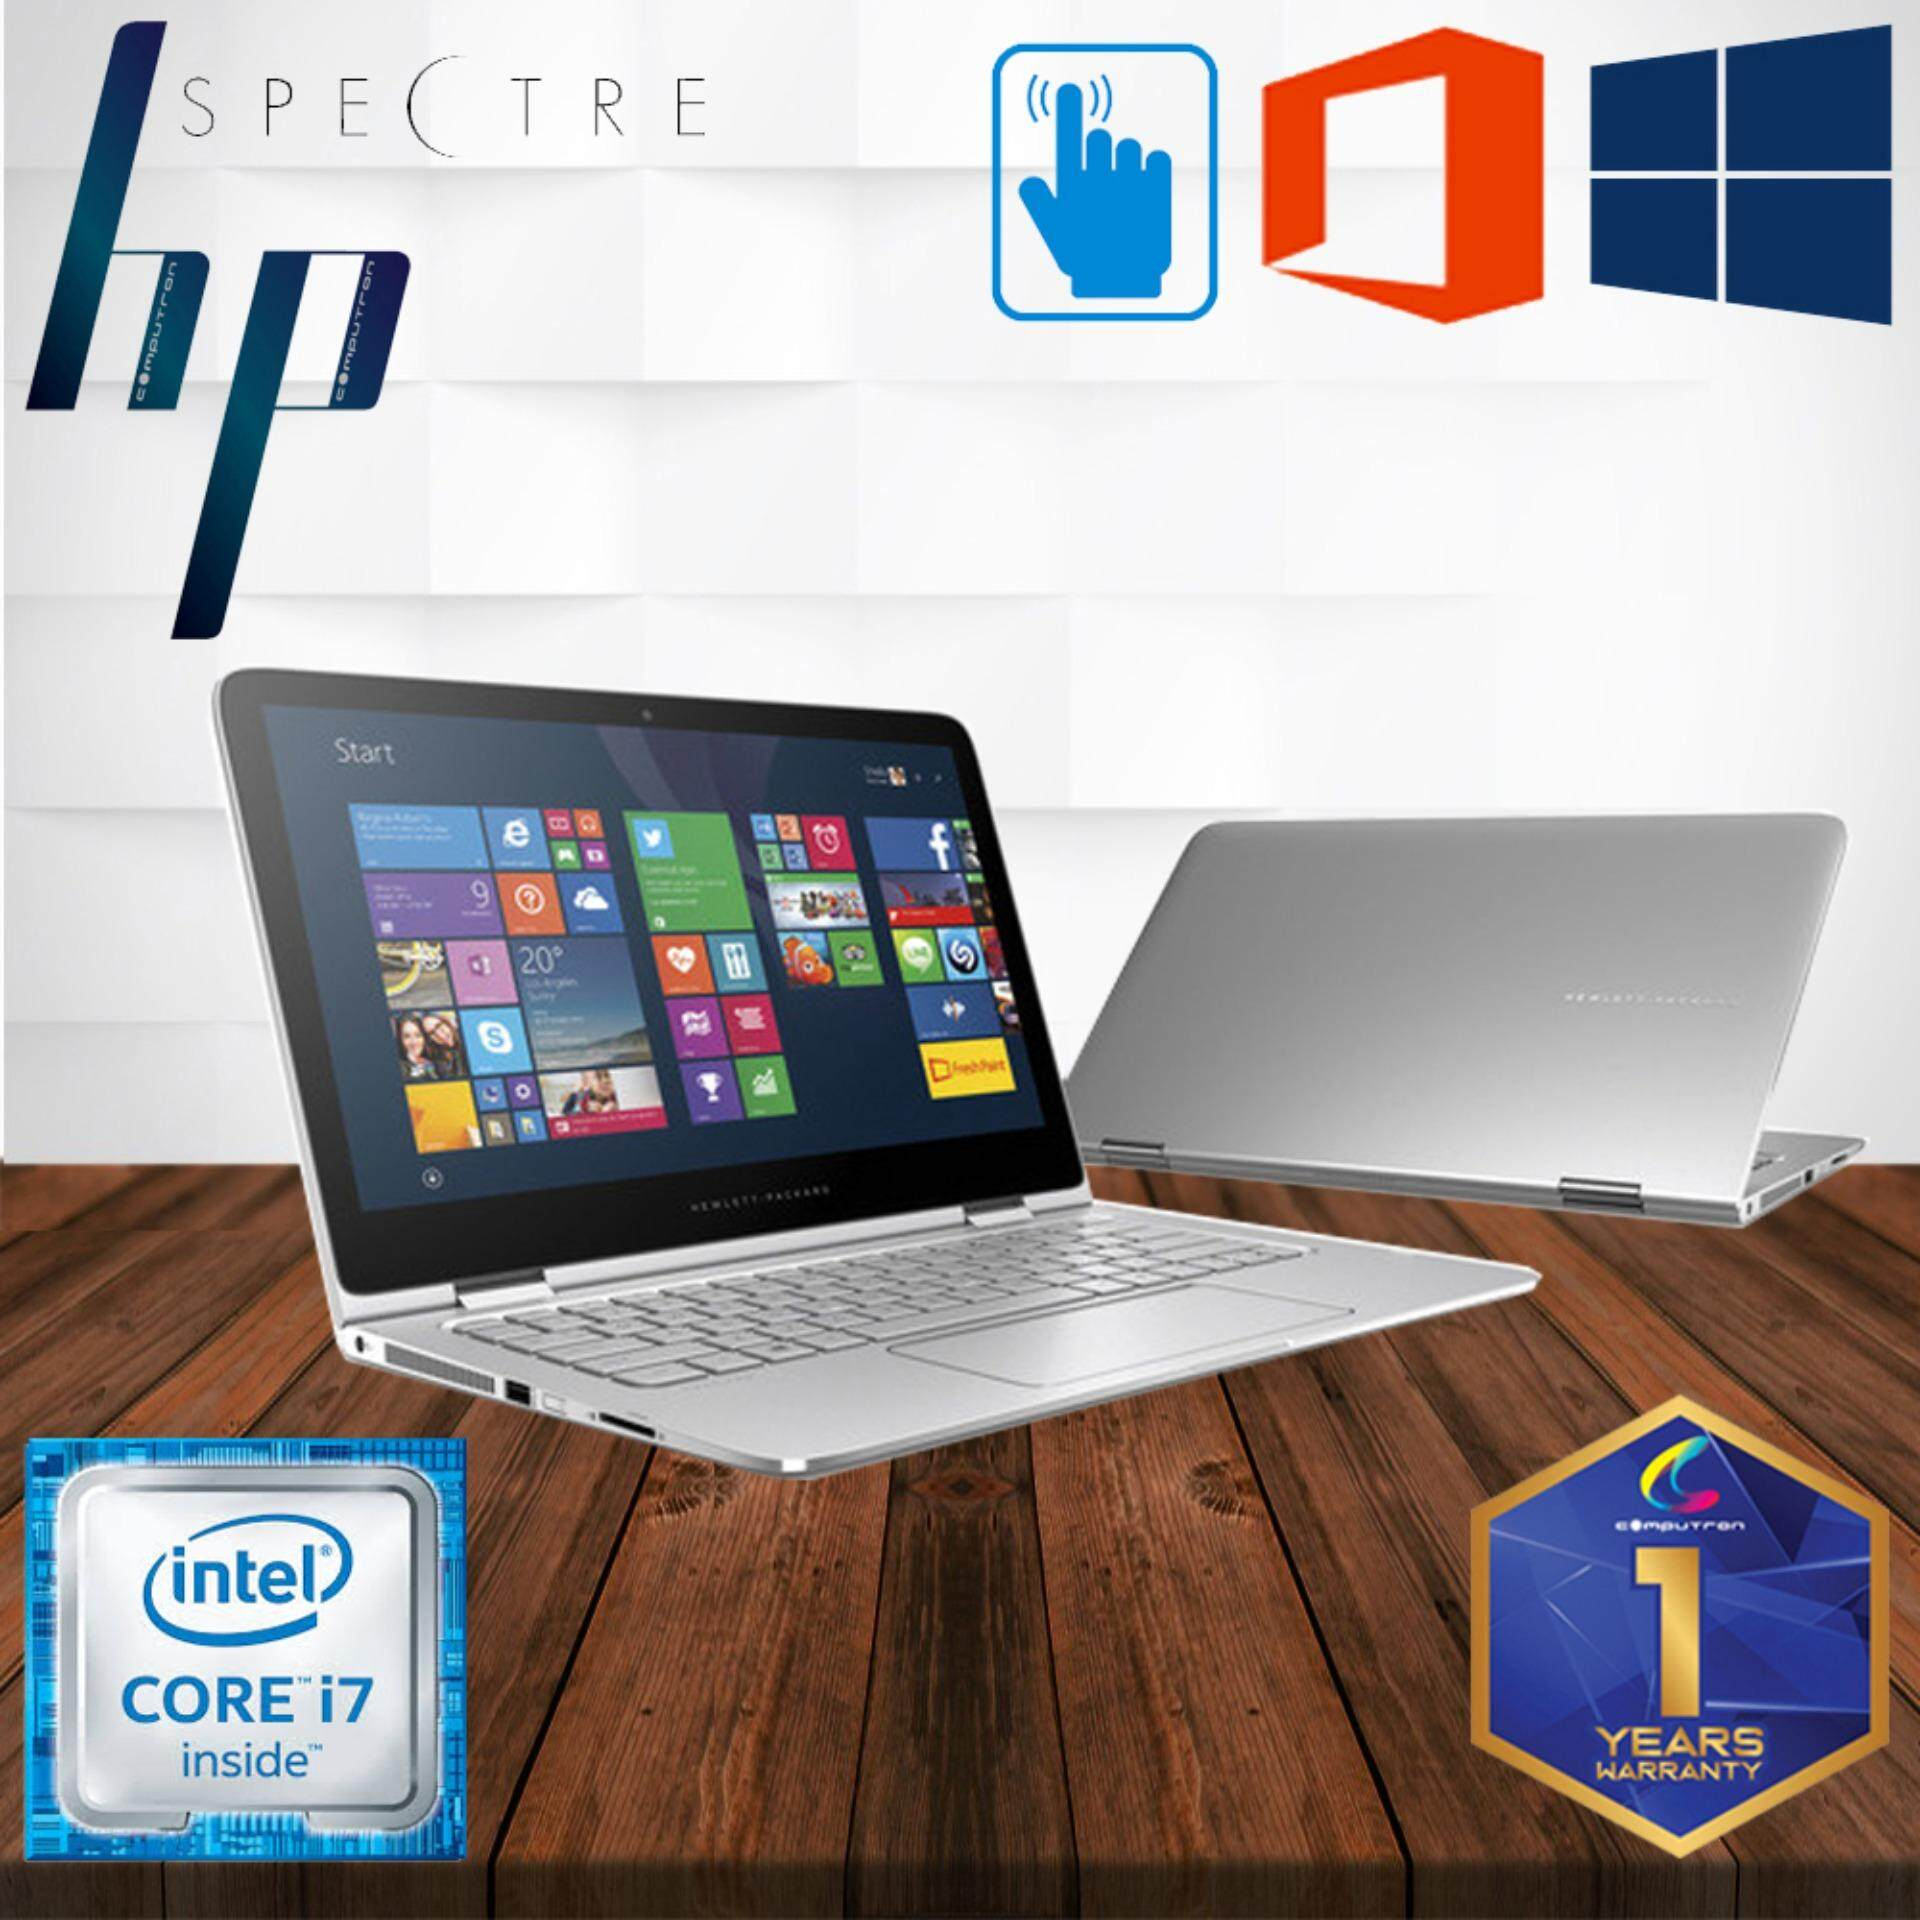 HP SPECTRE X360 WQHD 2K DISPLAY TOUCHSCREEN CONVERTIBLE ULTRABOOK [CORE I7 VPRO/ 8GB DDR3 RAM/ 256GB SSD/ WINDOW 10 PRO/ 1 YEAR WARRANTY] LAPTOP 2-IN-1 Malaysia